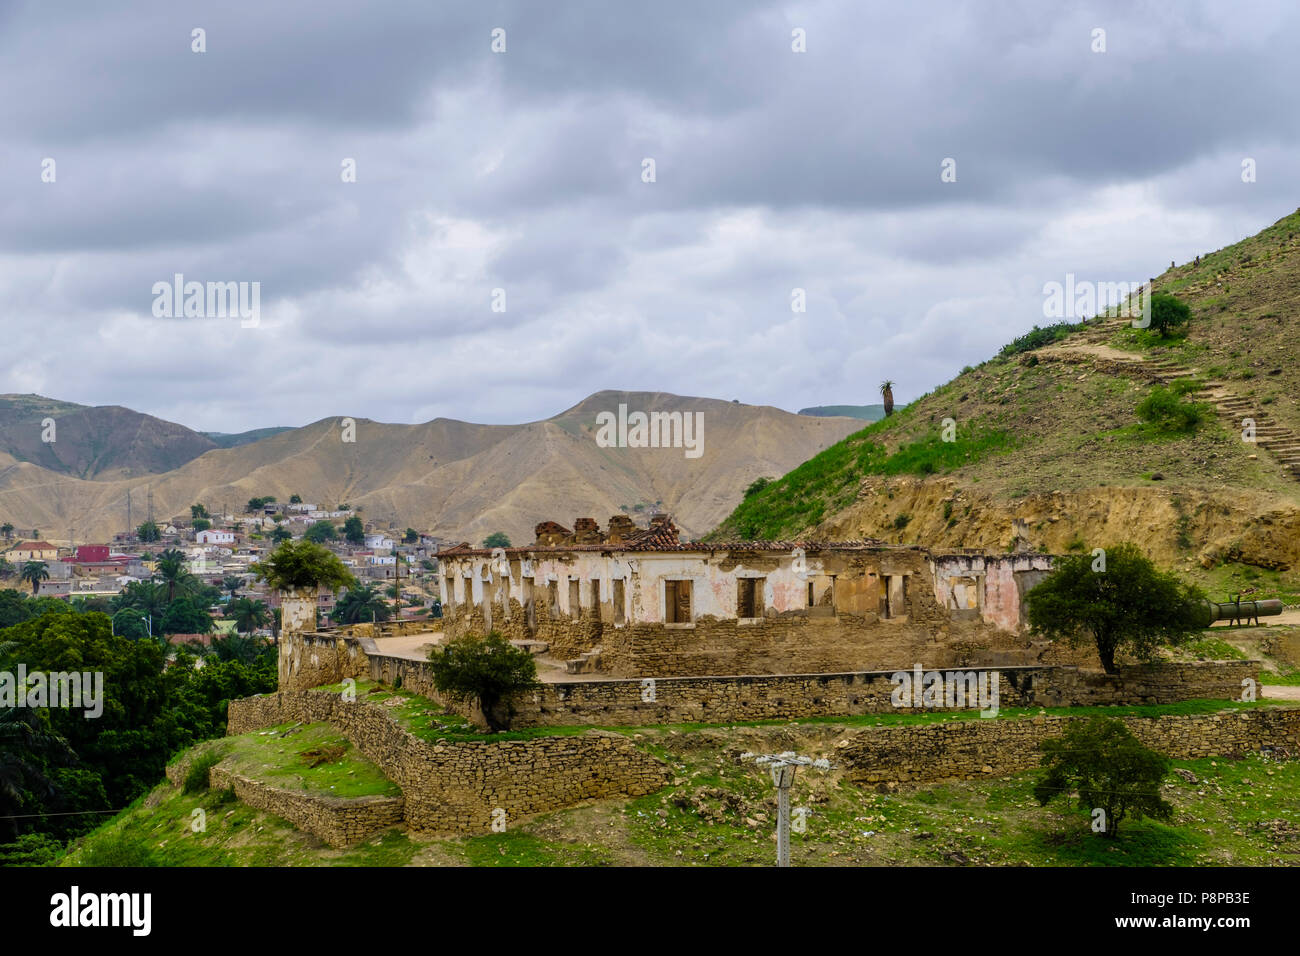 Remains of Portugese fort on hillside with city of Lobito Angola and hills in background - Stock Image